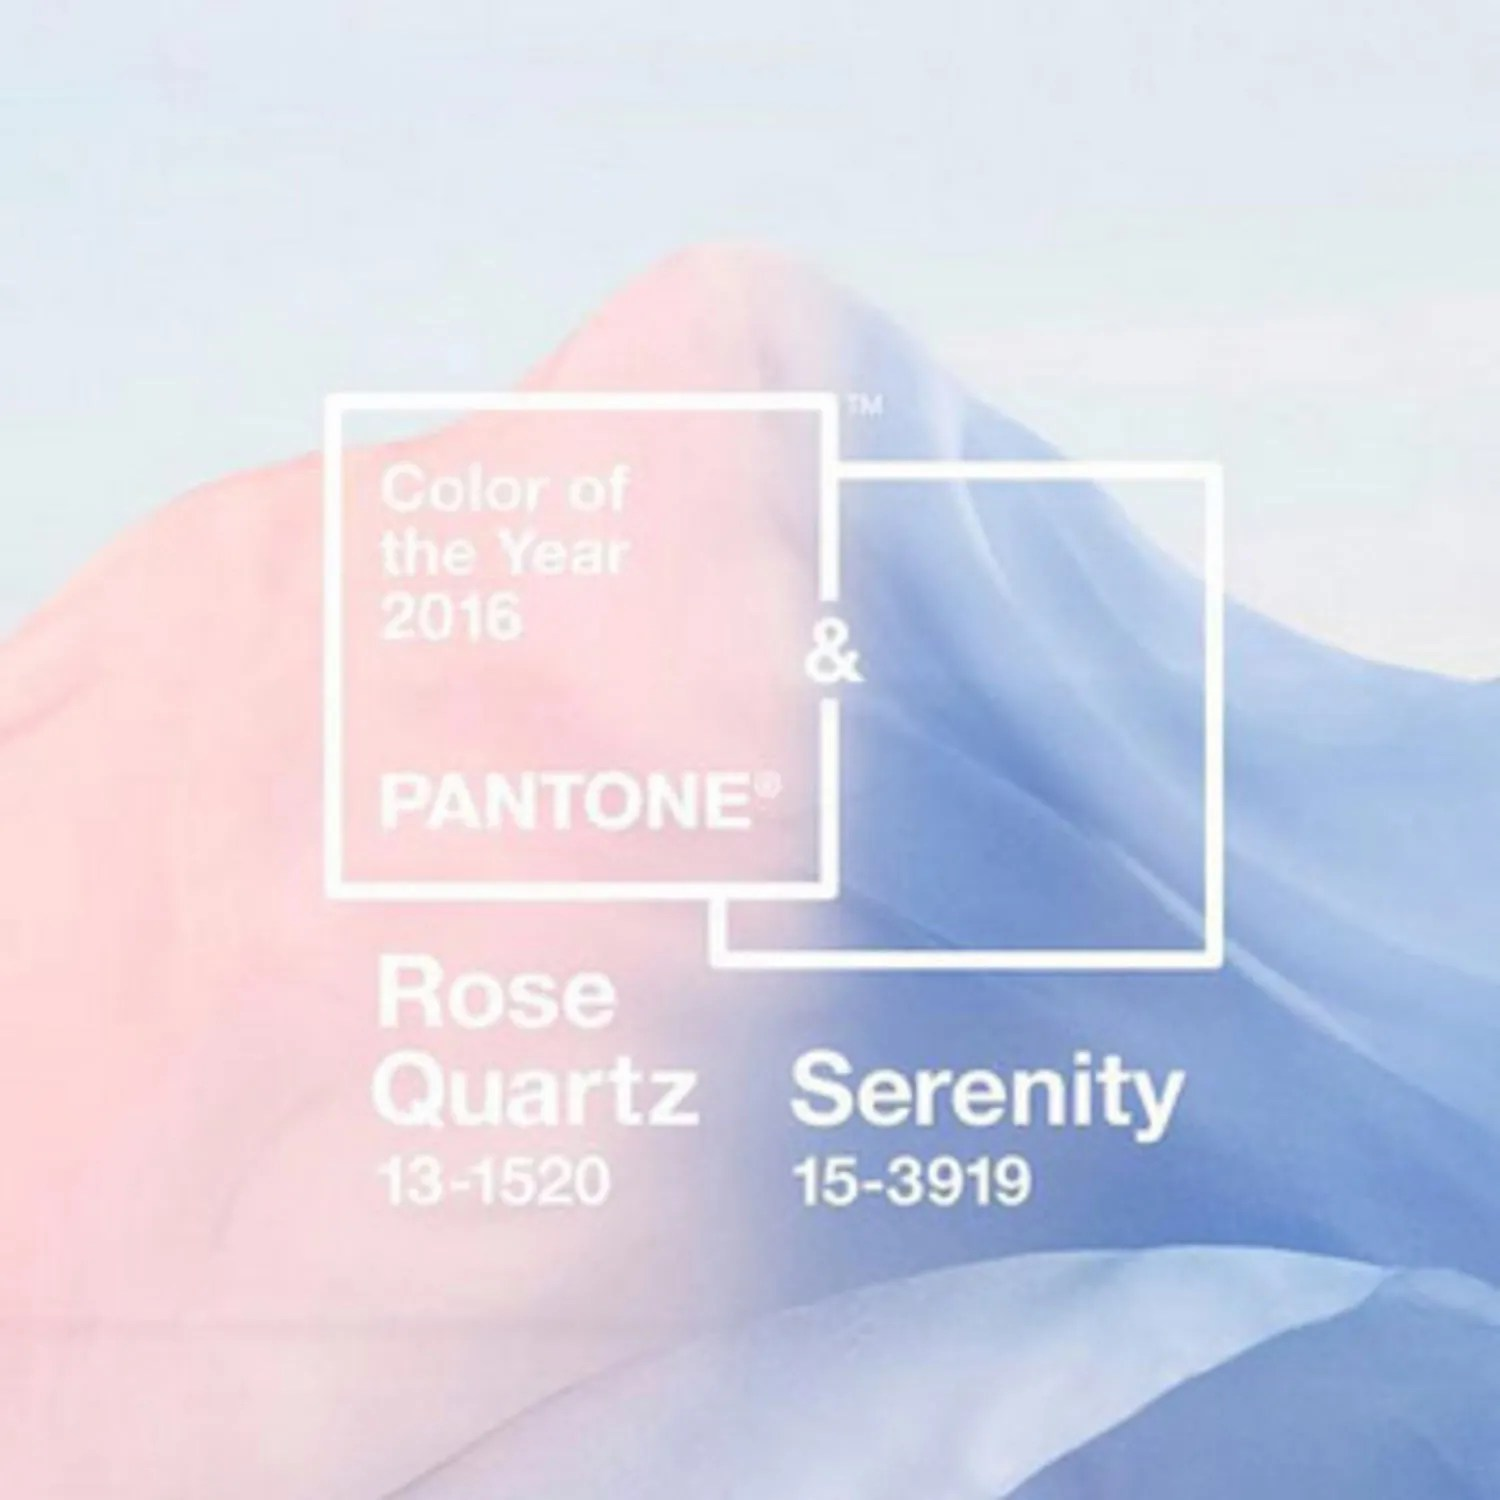 Pantone Color 2016 Pantone Color Of The Year 2016 Makeup Shades In Rose Quartz And